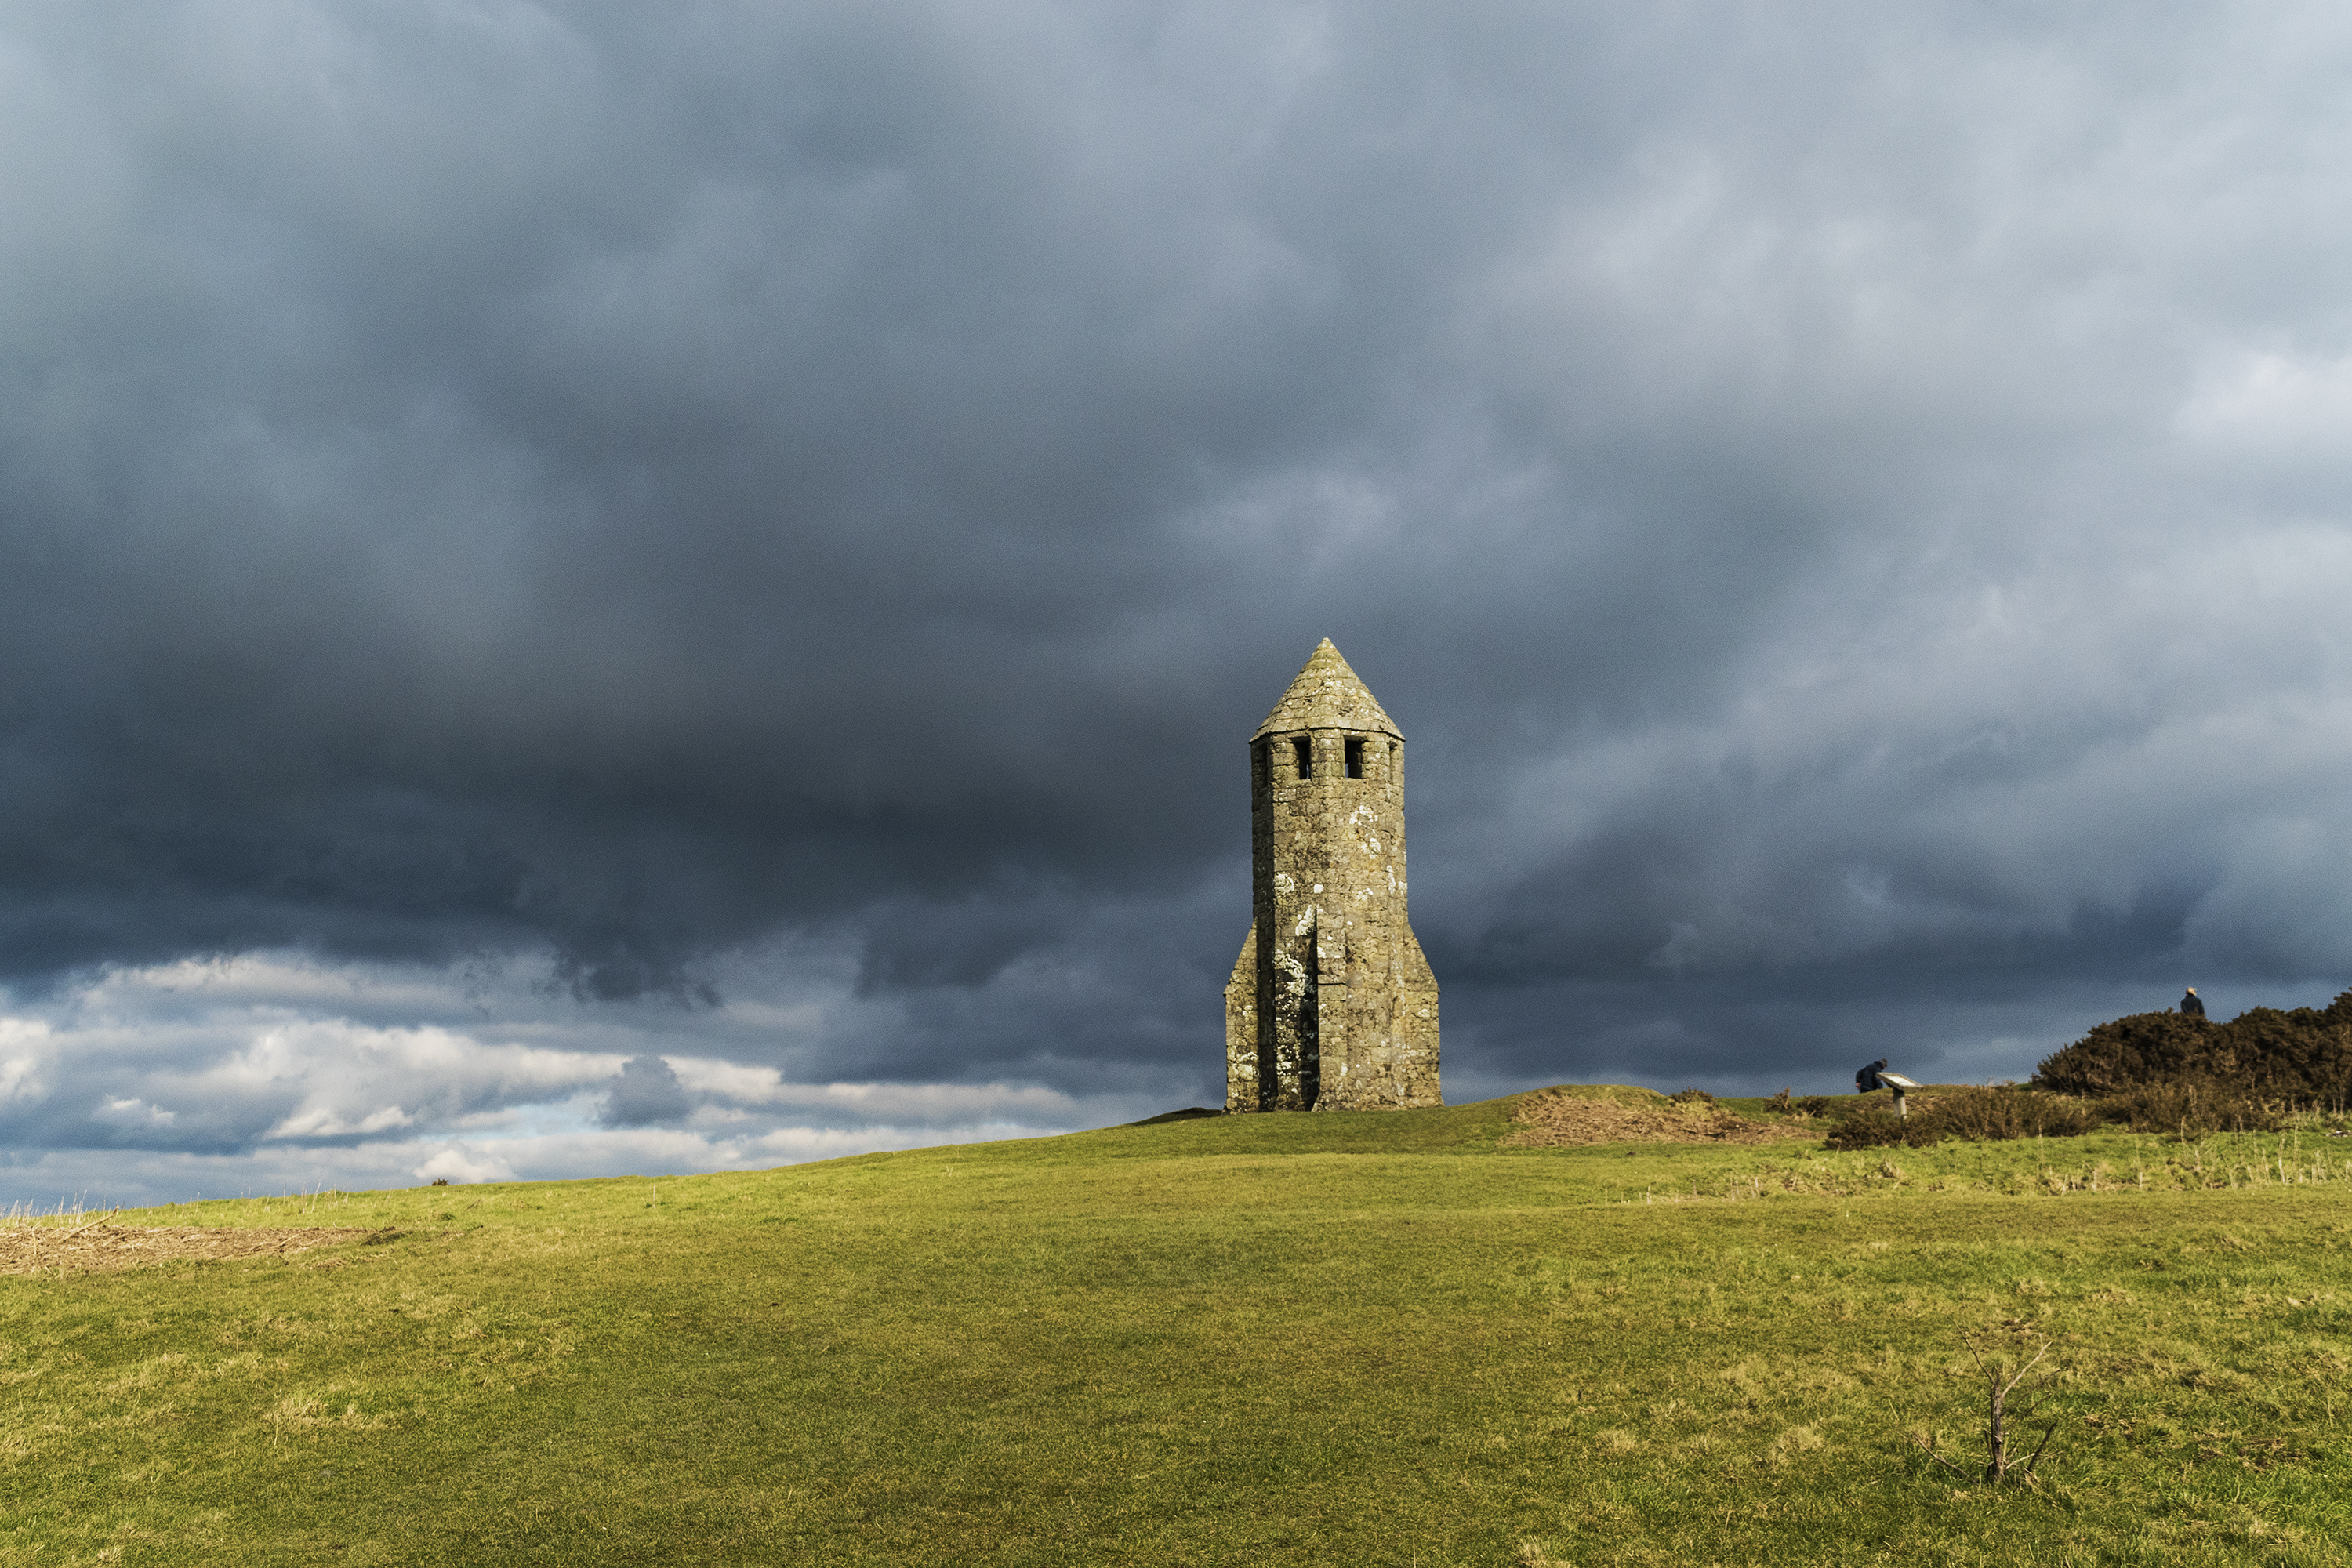 Storm clouds over the Pepperpot, St Catherine's Oratory